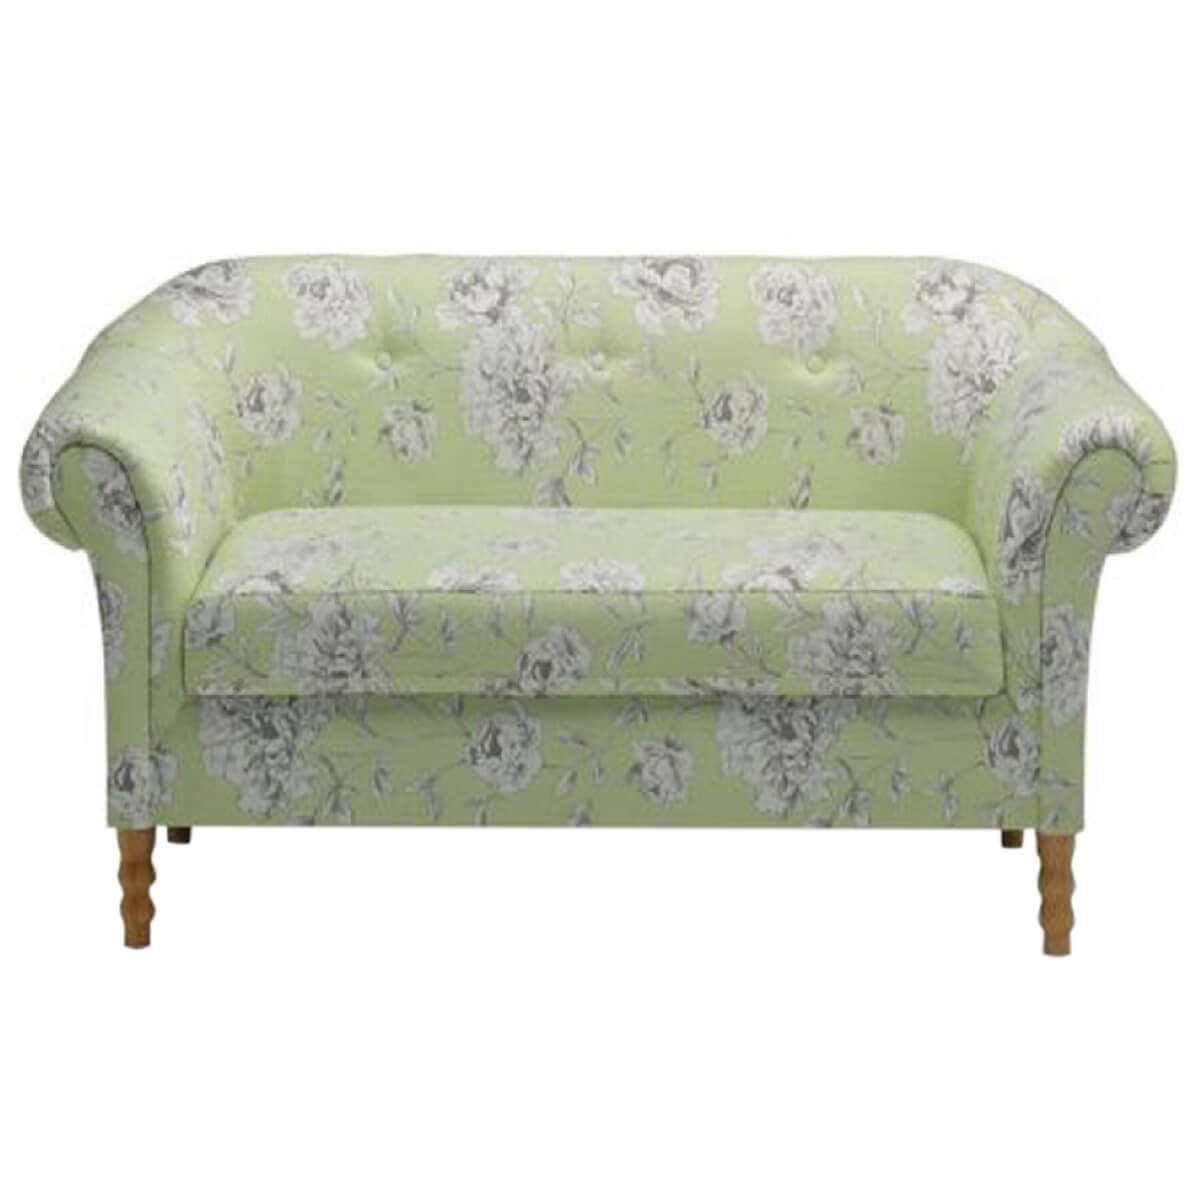 loveseat stylish sofa living sofas chenille and p set room loveseats image floral